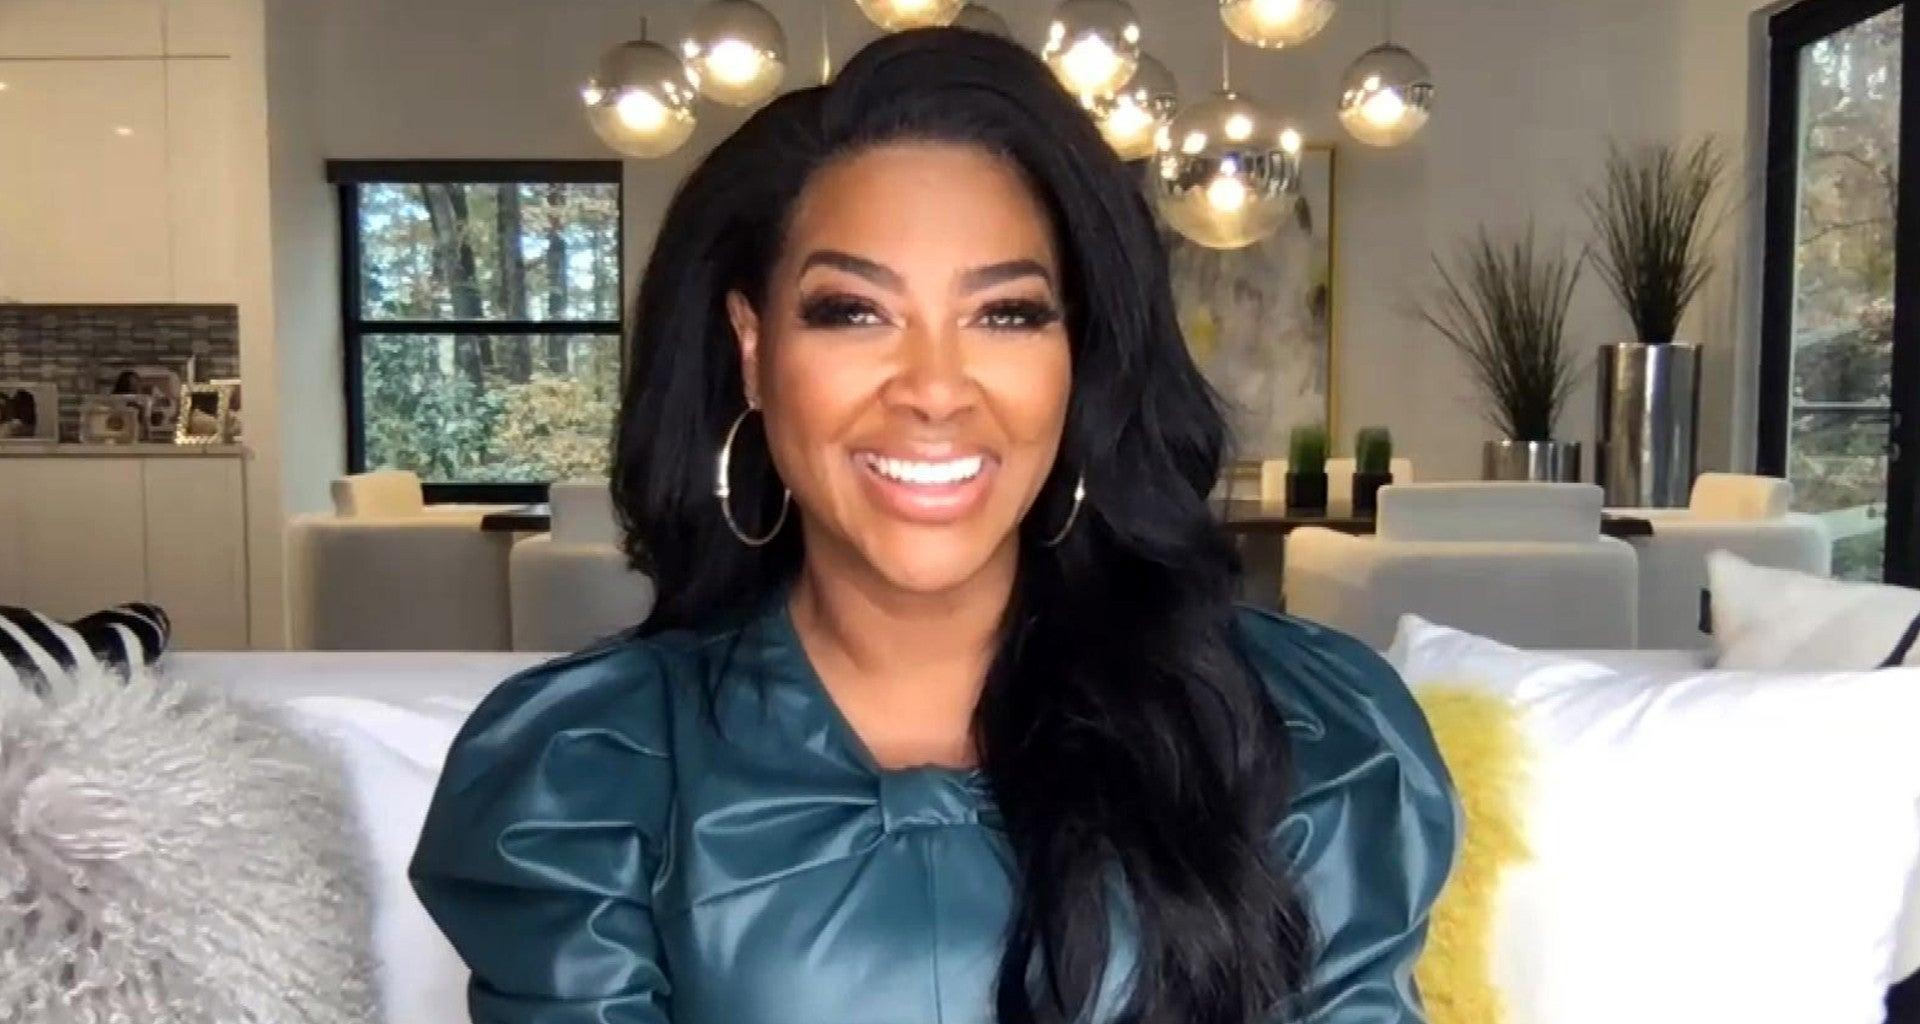 Kenya Moore Shares Some Throwback RHOA Confessionals And Takes Fans Down The Memory Lane